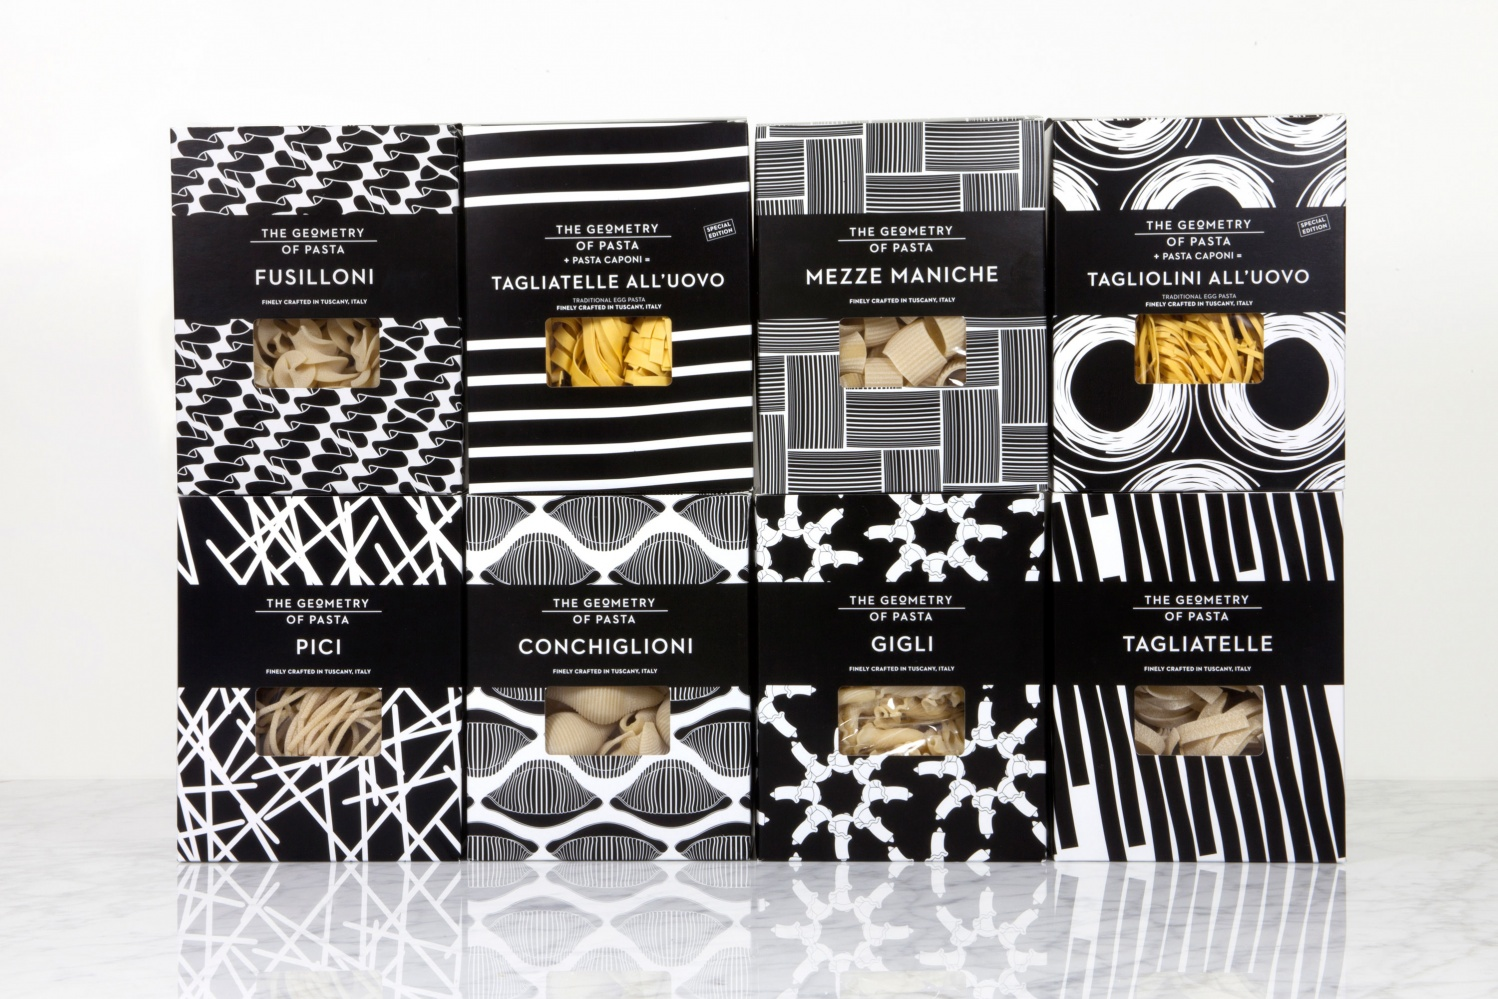 The Geometry Of Pasta by Here Design